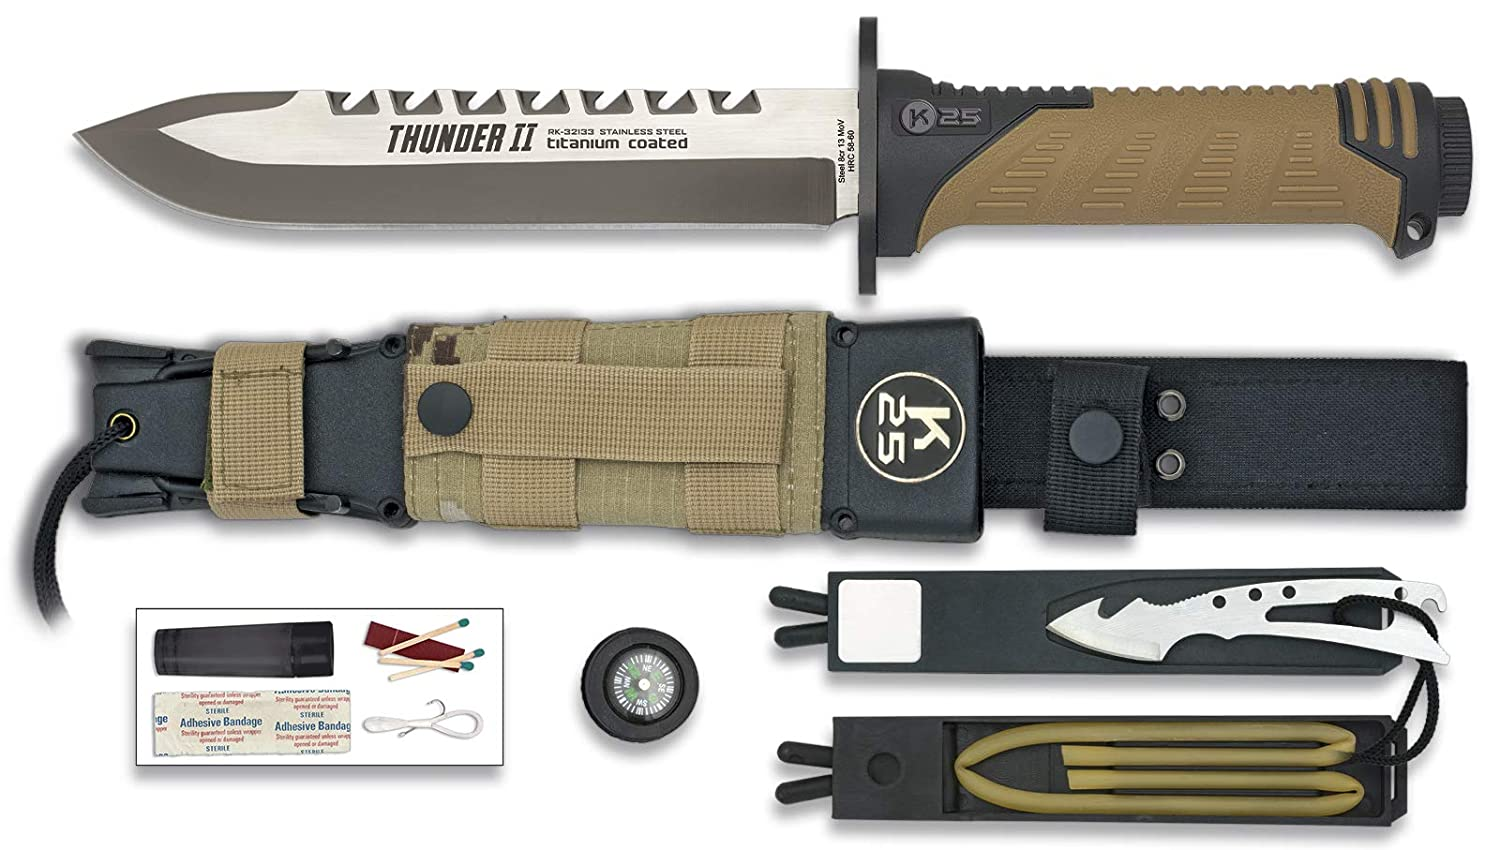 Amazon.com: K25 Knife Model THUNDER II SAND 32133: Sports ...